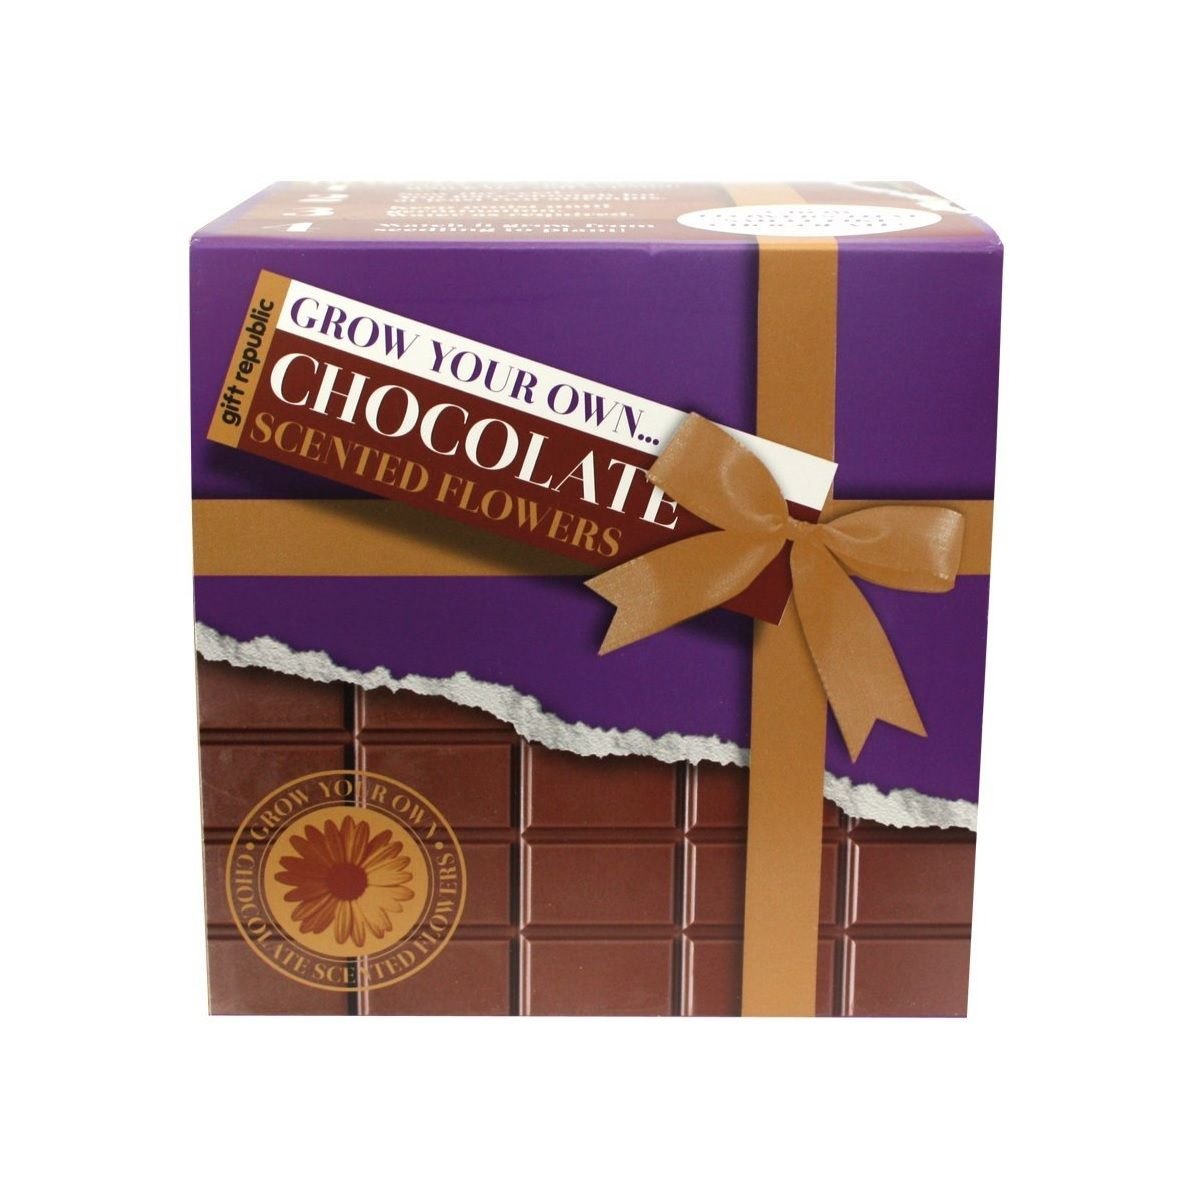 Great Gifts For Chocolate Lovers Grow Your Own Chocolate Scented Flowers